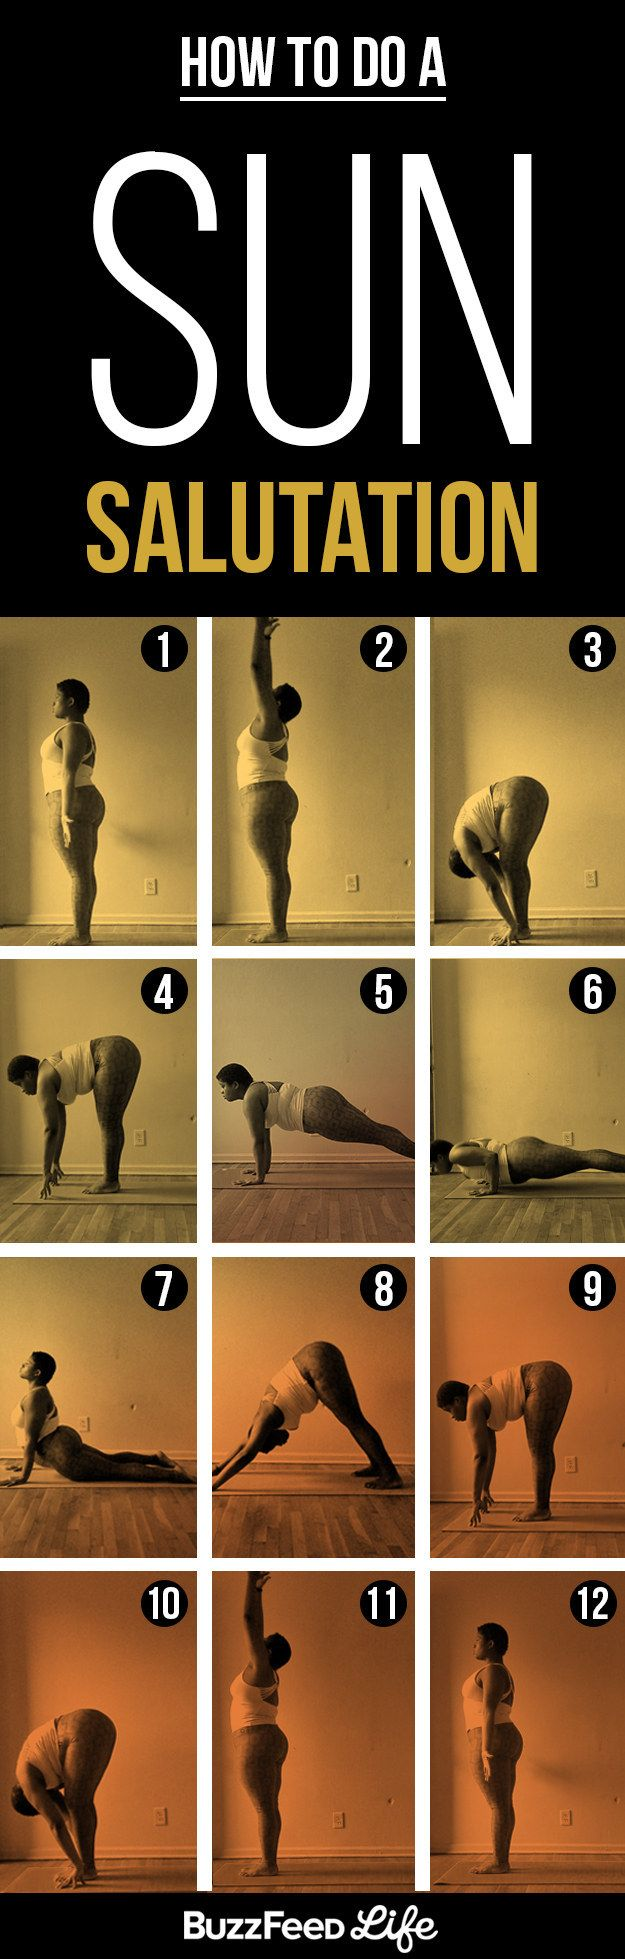 Sun salutations are for everyone. Master them and start your day with energy and focus.